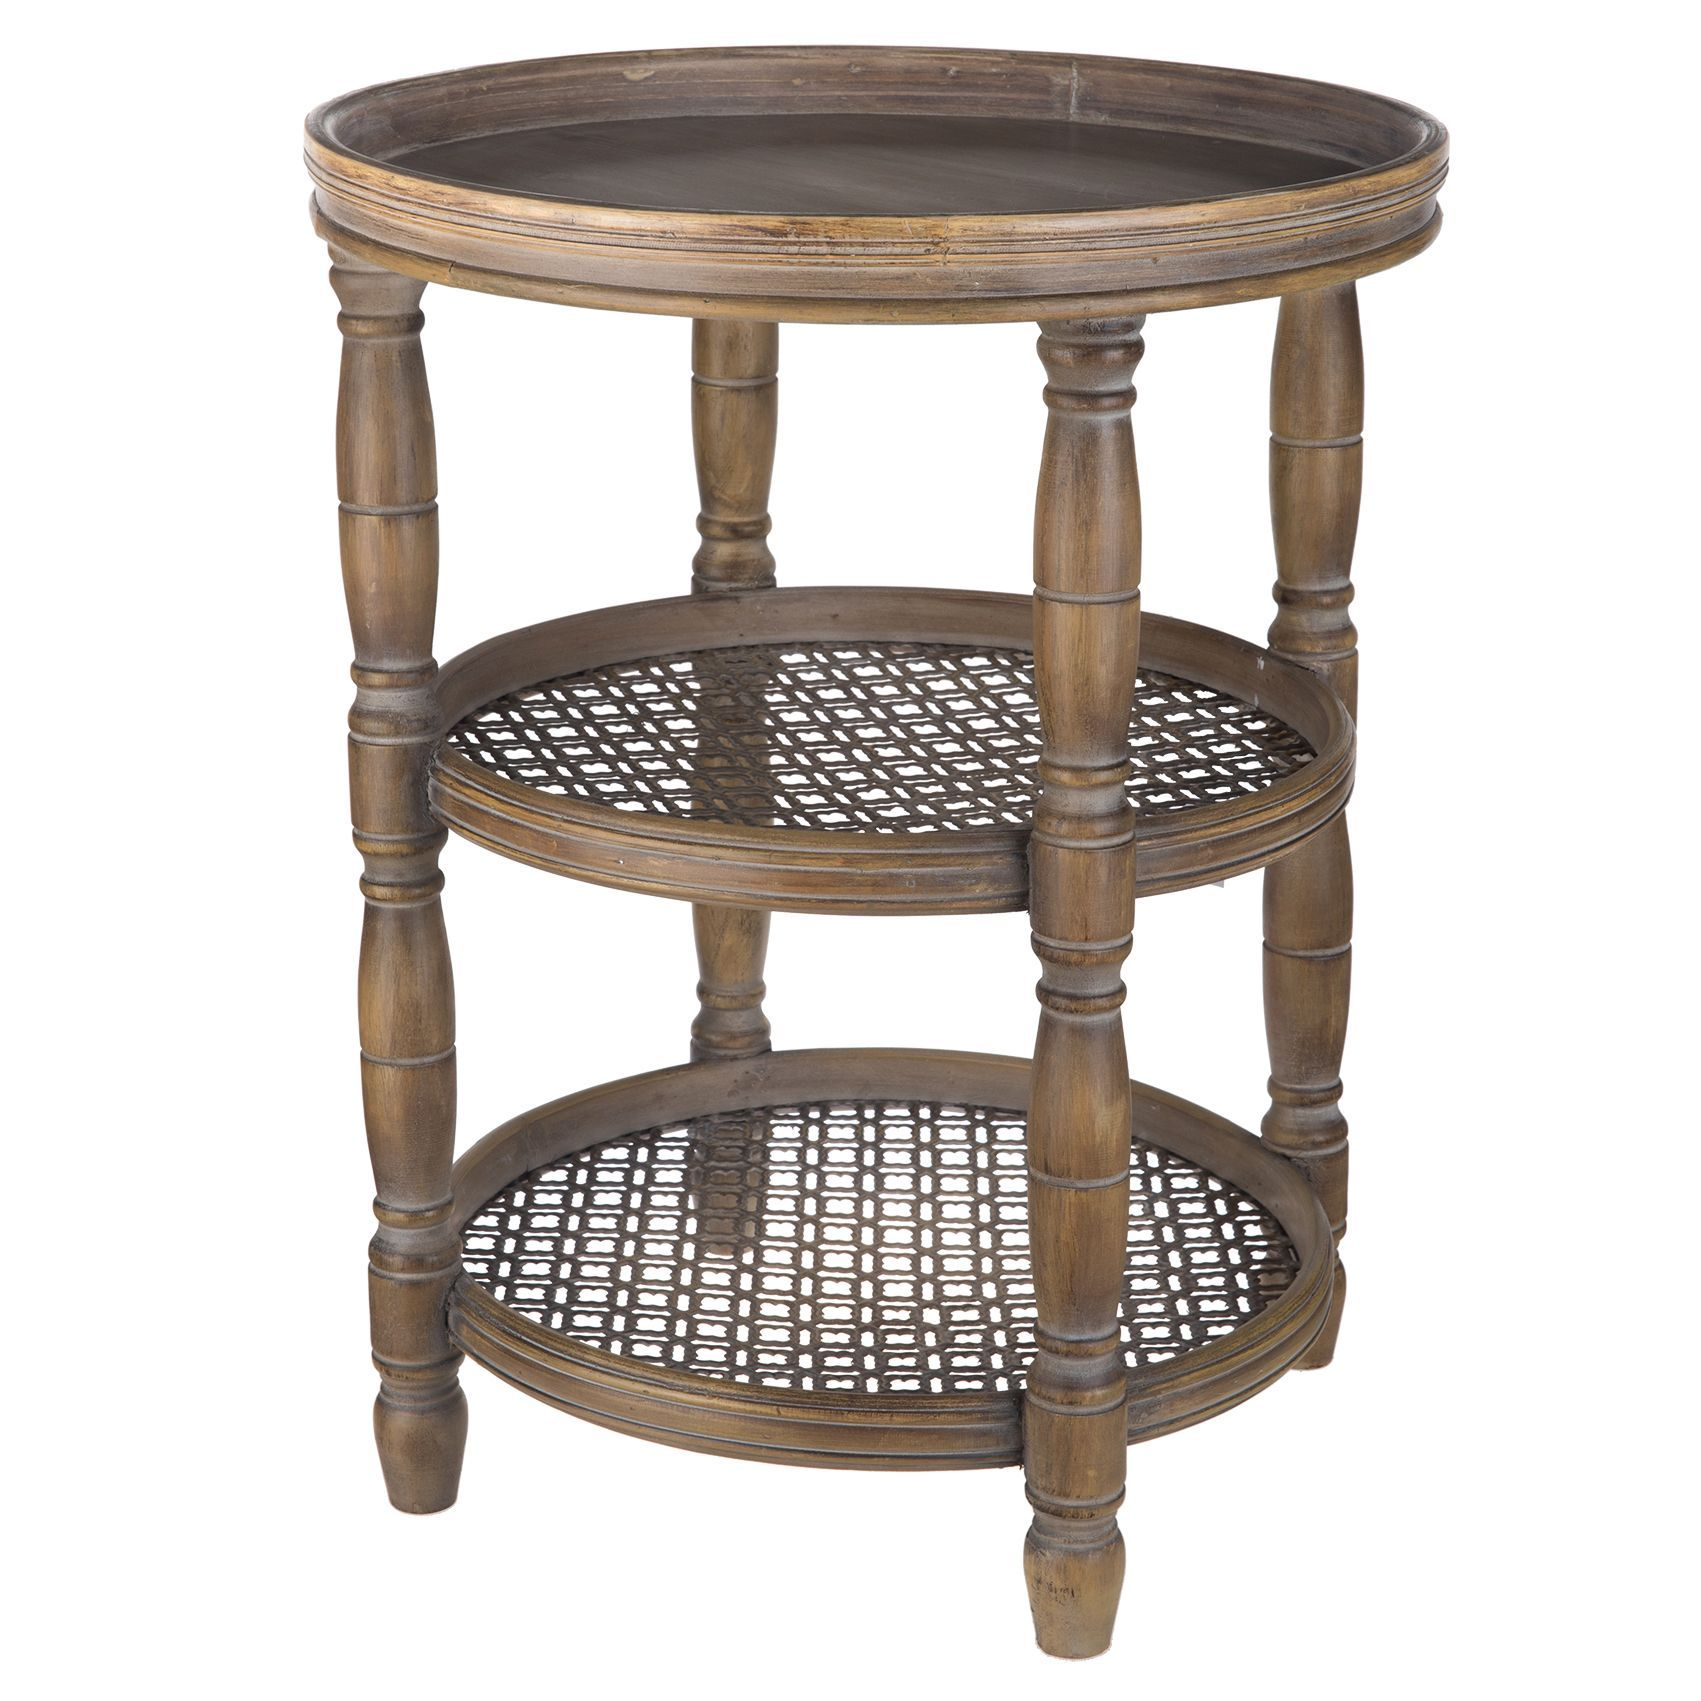 brown wood metal paisley round accent table threshold parquet waterproof outdoor furniture covers hobby lobby lamps pier one imports dishes small with drawers turkish iron marble